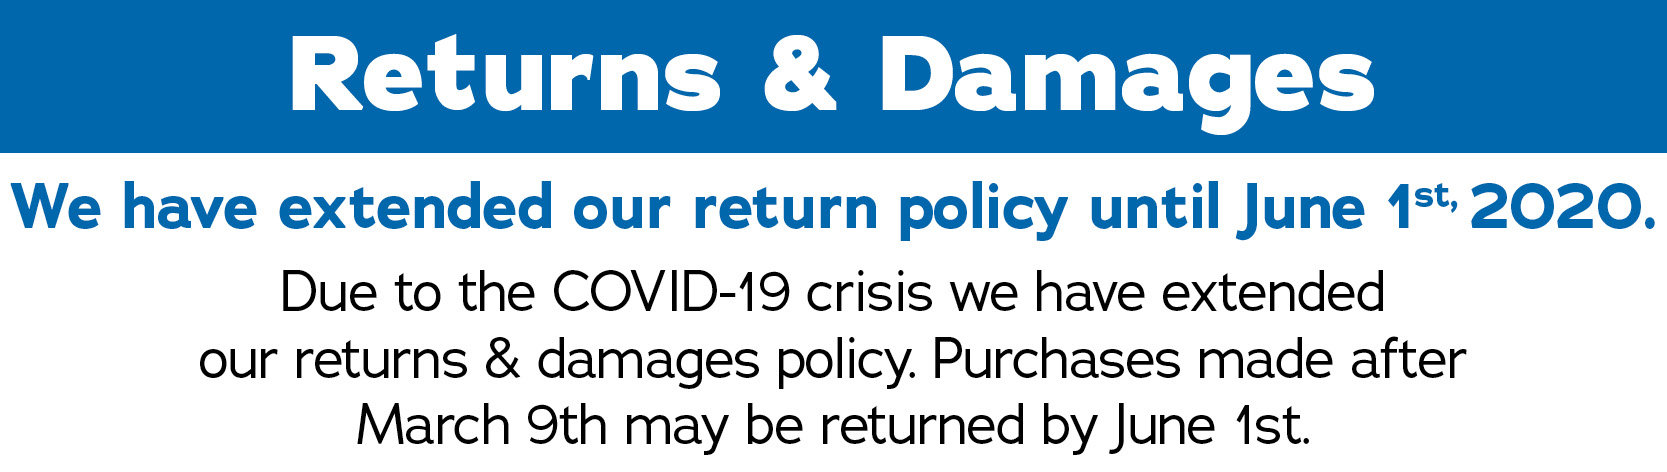 Due to the COVID-19 crisis, we have extended our Returns & Damages Policy. Purchases made after March 9th, 2020 may be returned by June 1st, 2020.